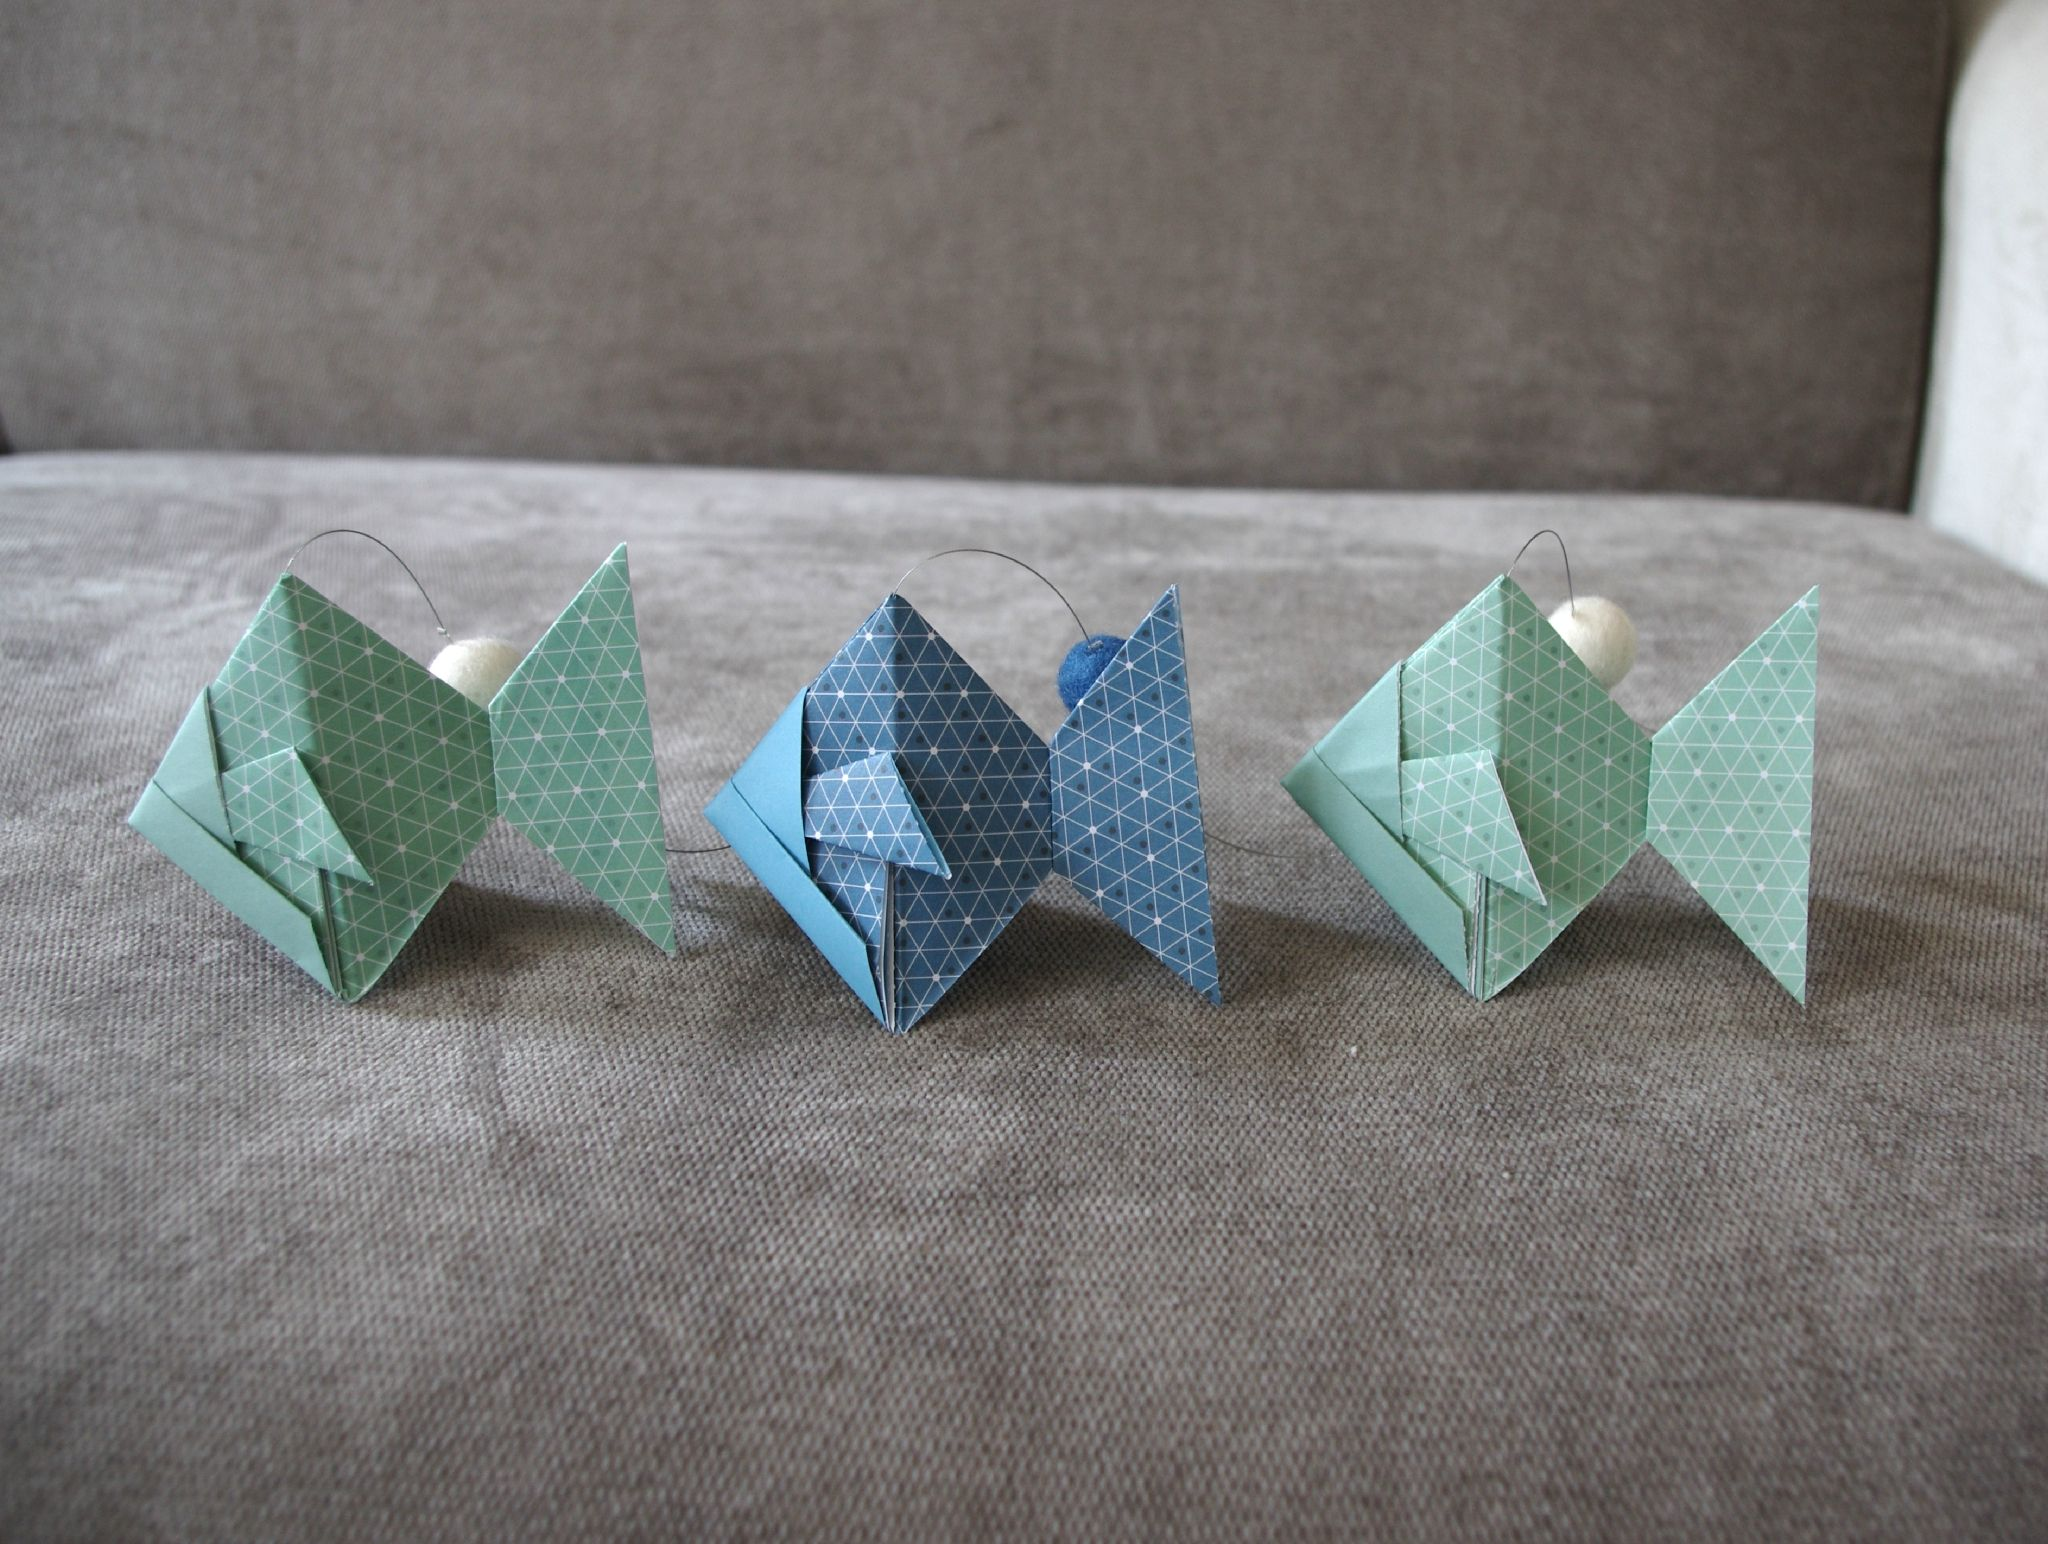 guirlande poisson origami bleu et vert anis boule feutrine enfants pinterest vert anis. Black Bedroom Furniture Sets. Home Design Ideas